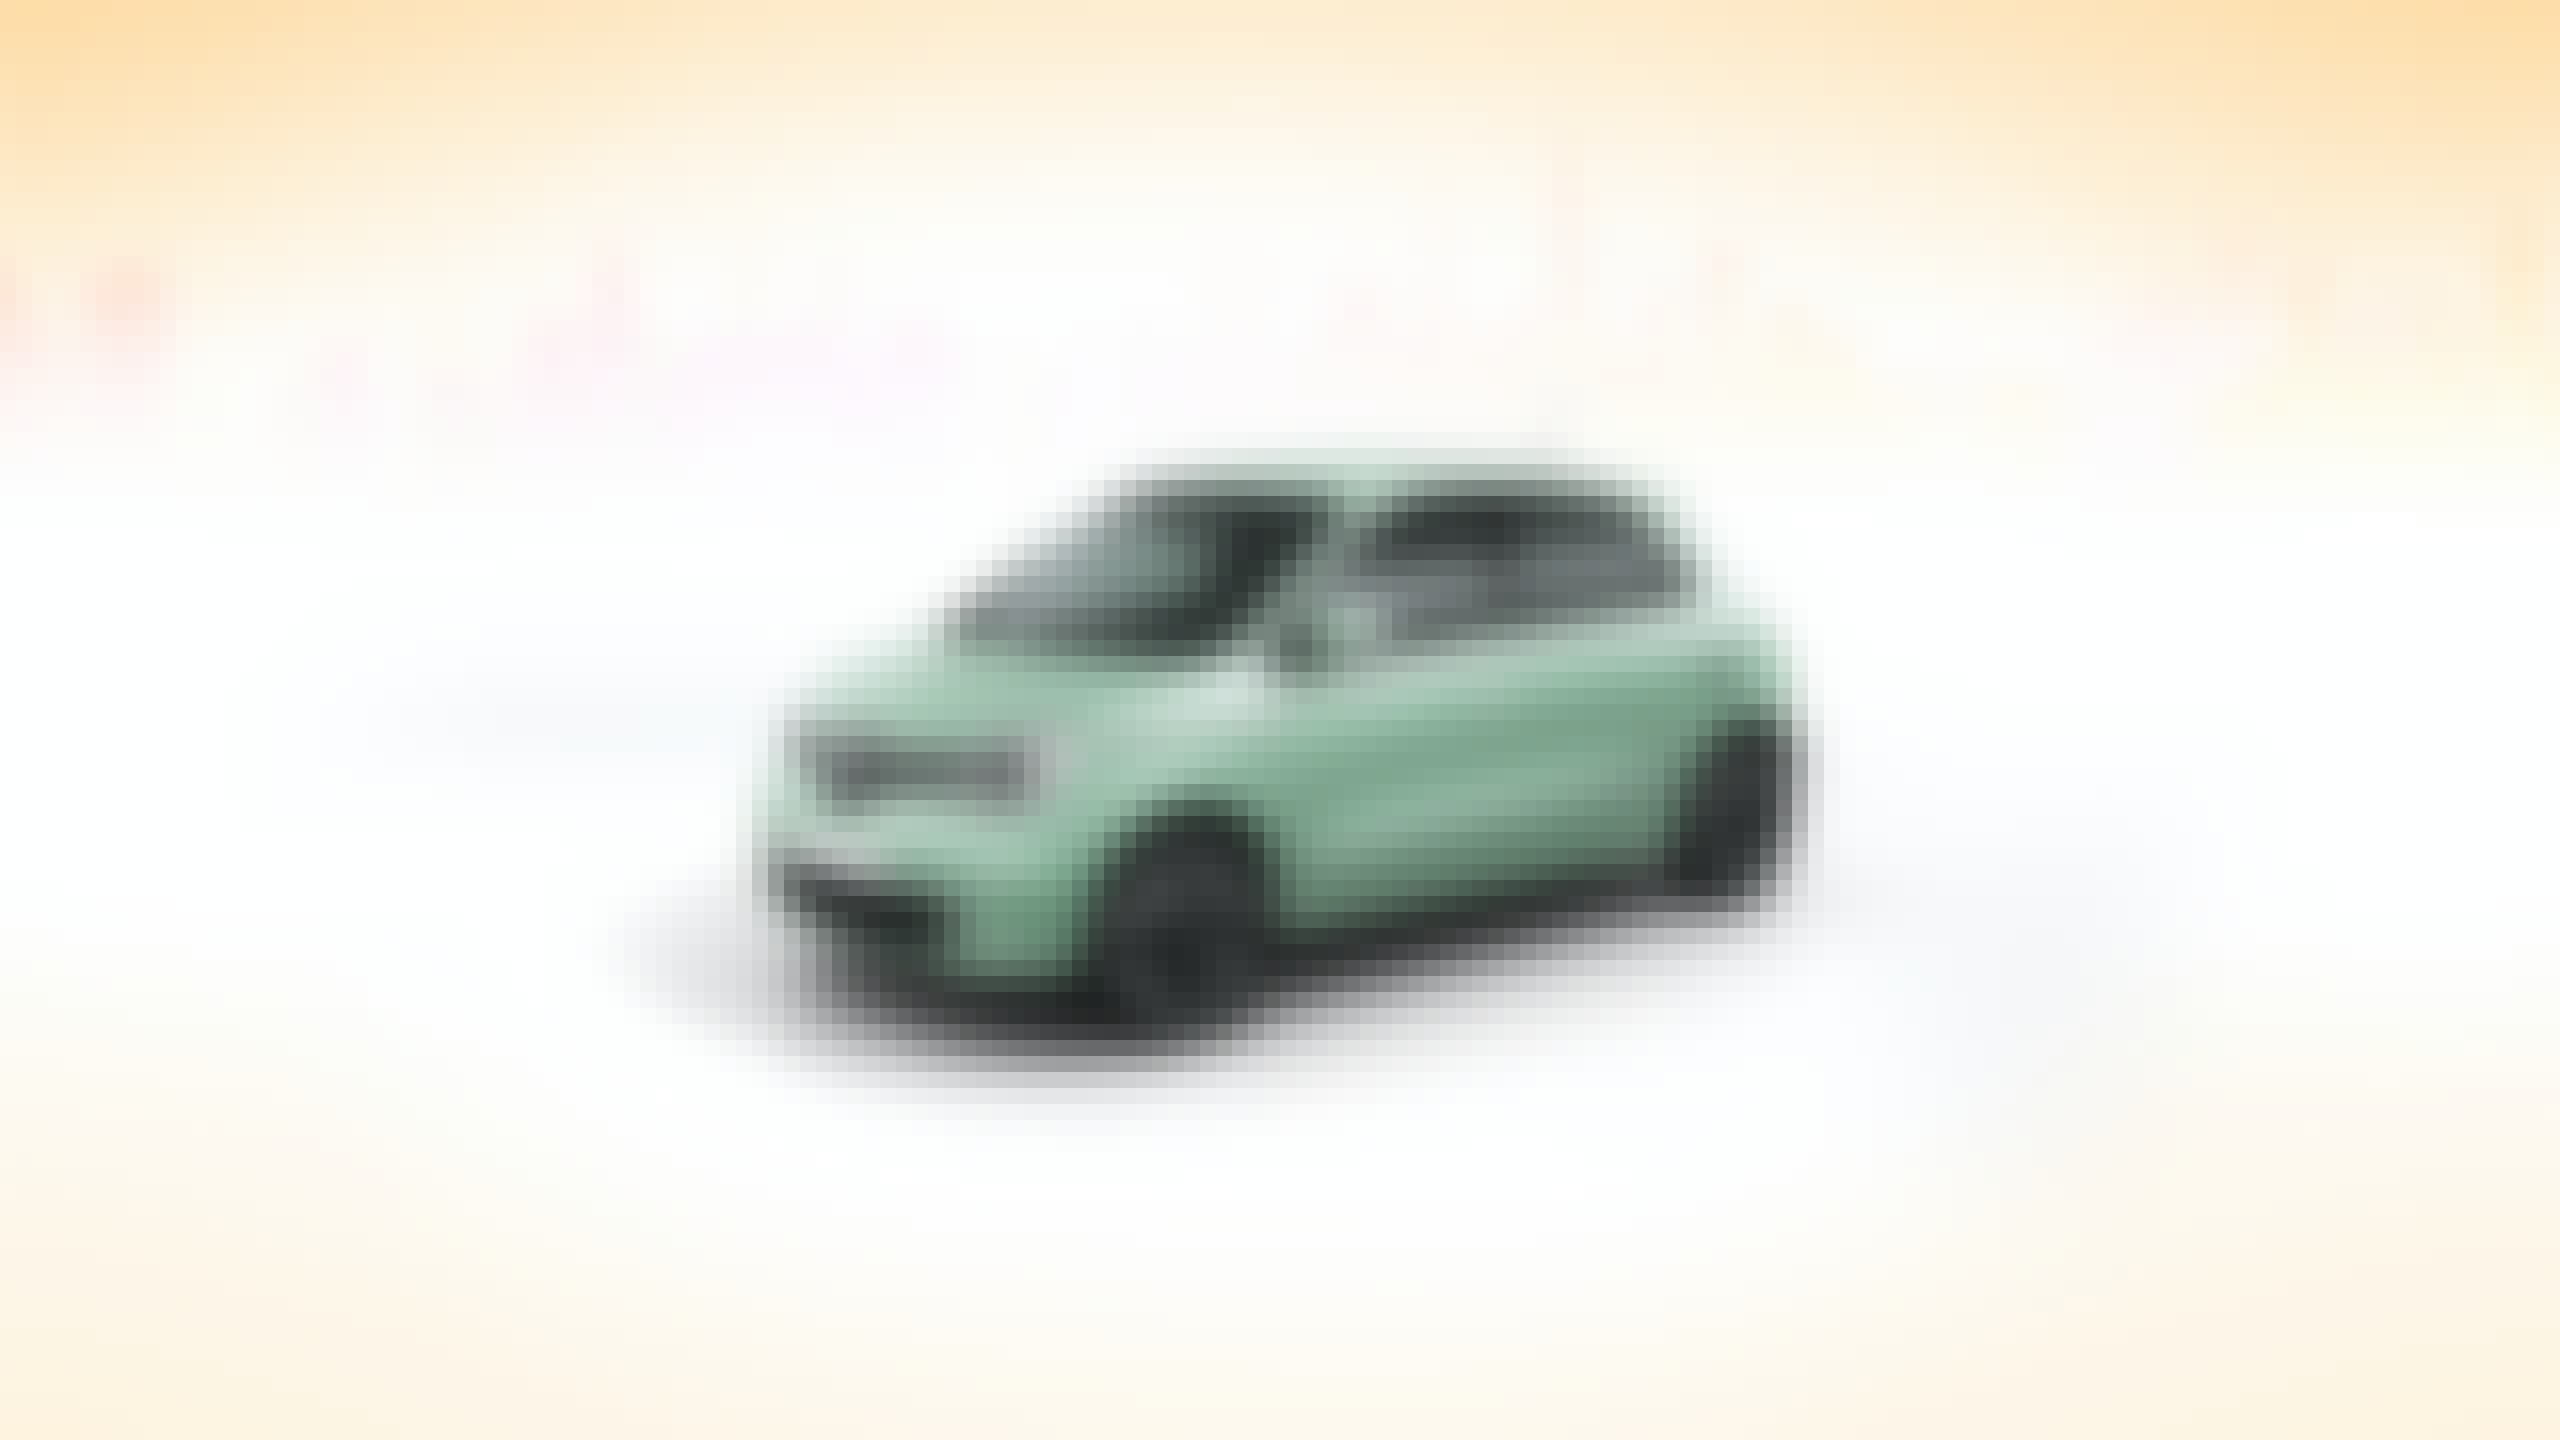 Is displayed a green Renault Twingo